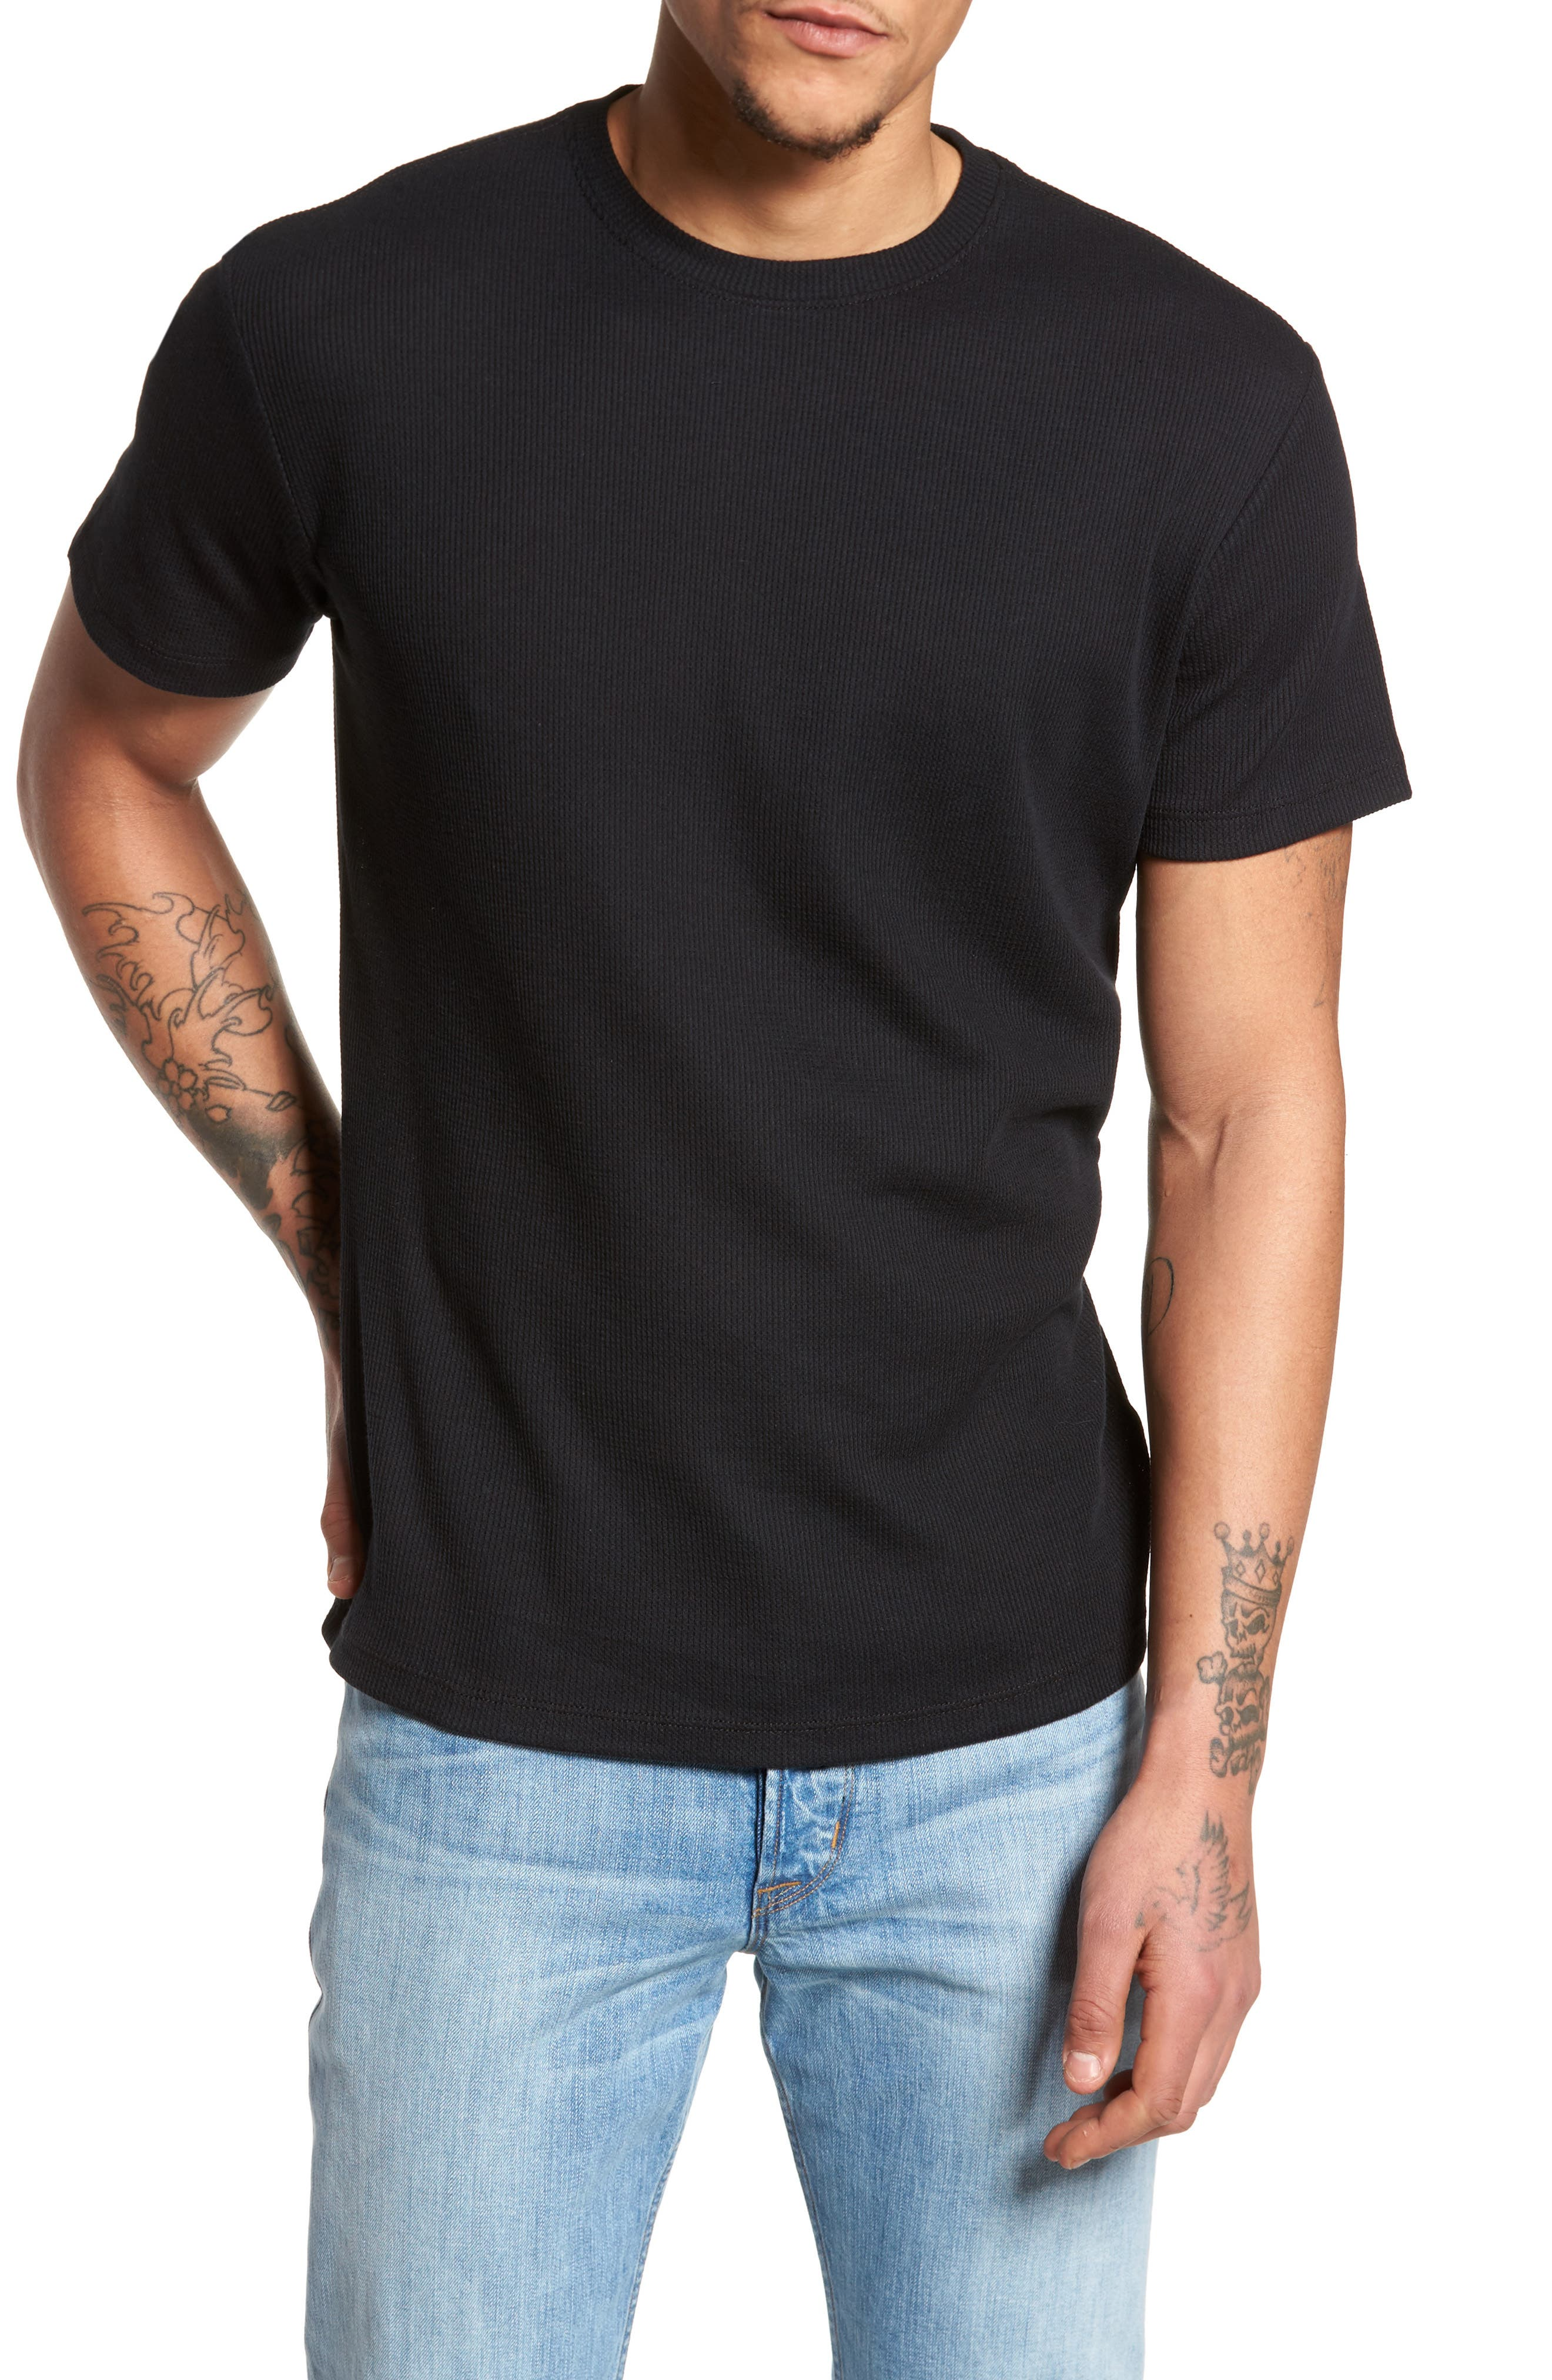 Thermal T-Shirt,                         Main,                         color, Black Rock